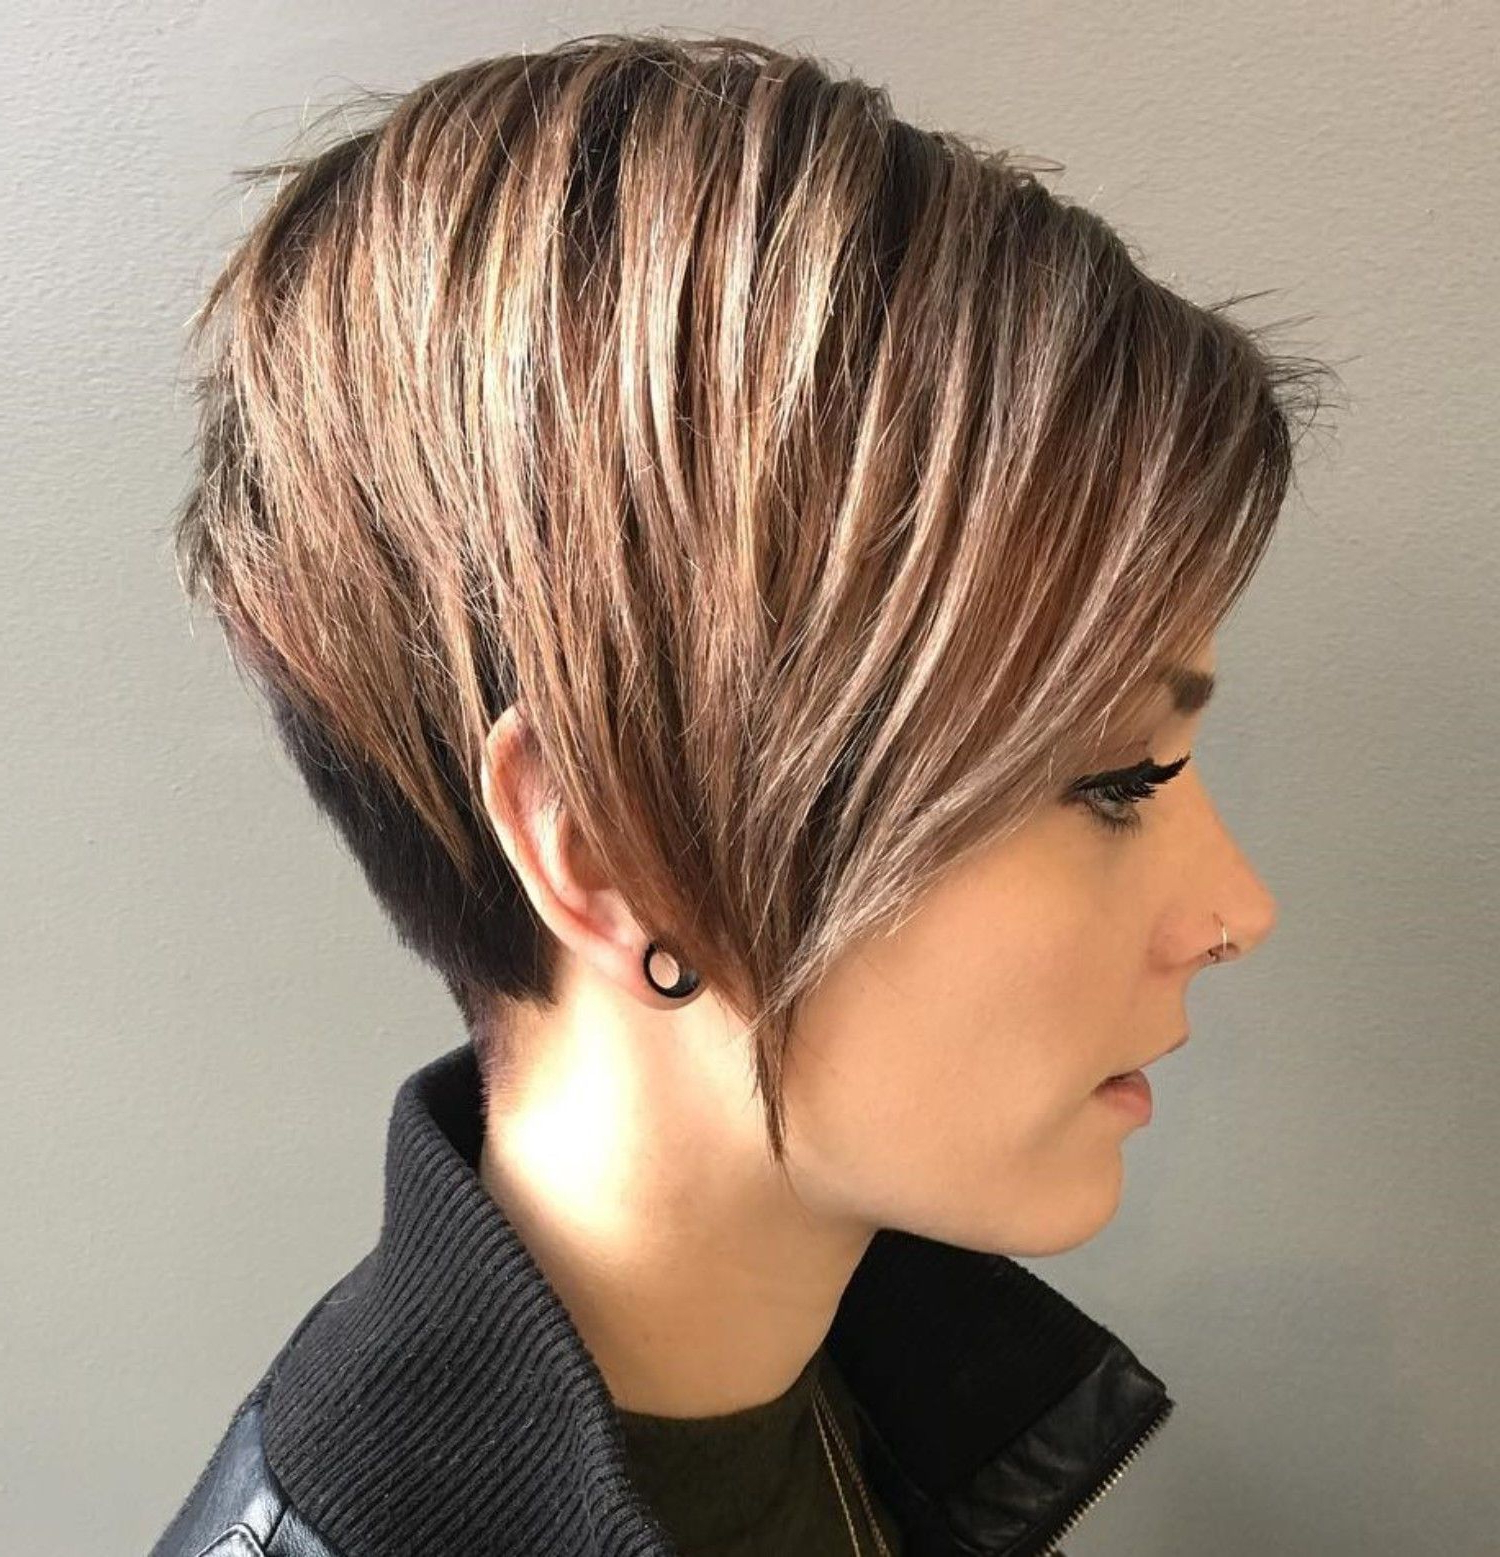 70 Cute And Easy To Style Short Layered Hairstyles In 2018 | Hair With Regard To Messy Pixie Haircuts With V Cut Layers (View 12 of 20)